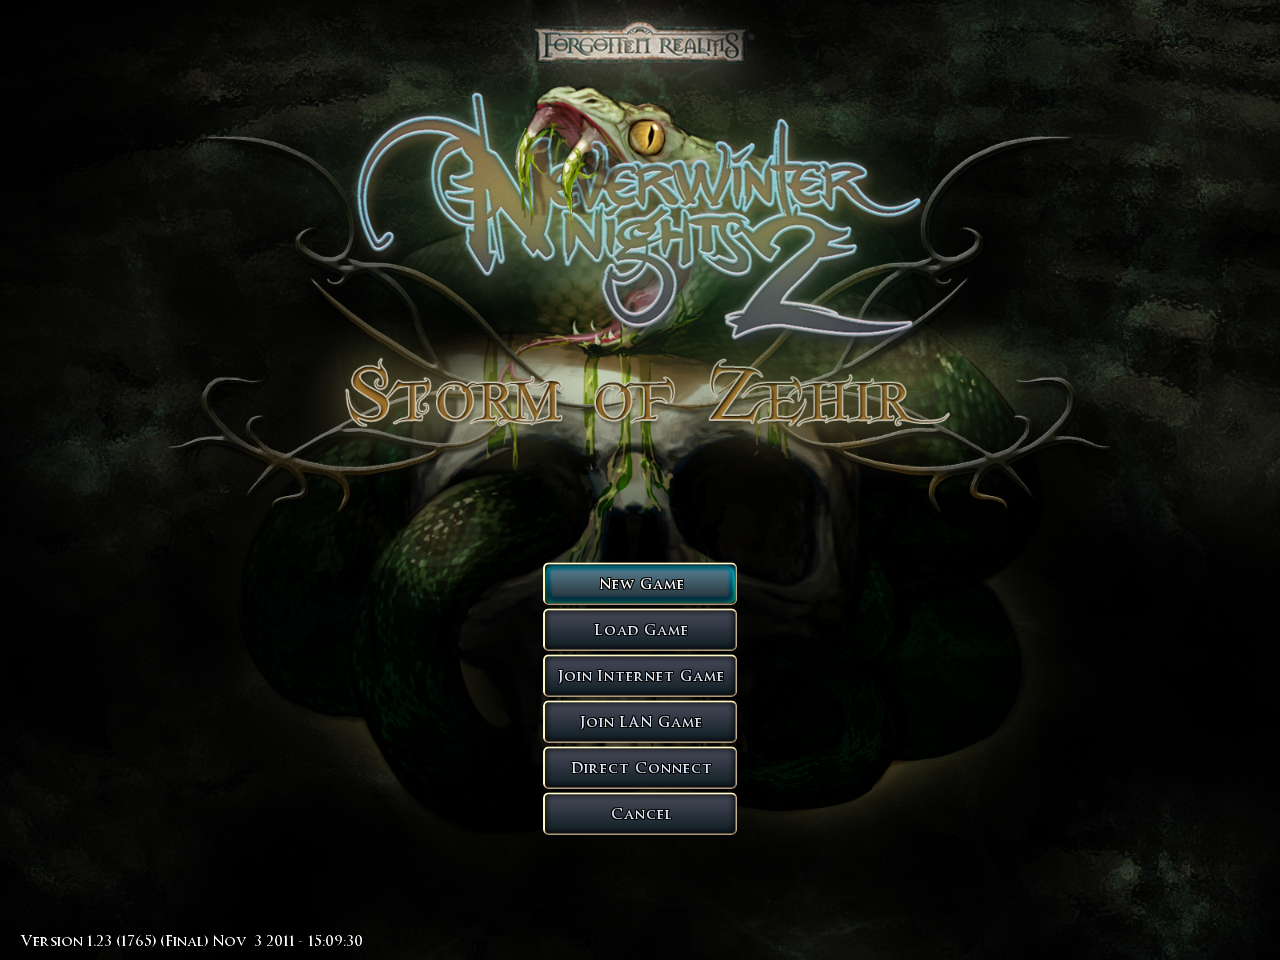 neverwinter how to change name